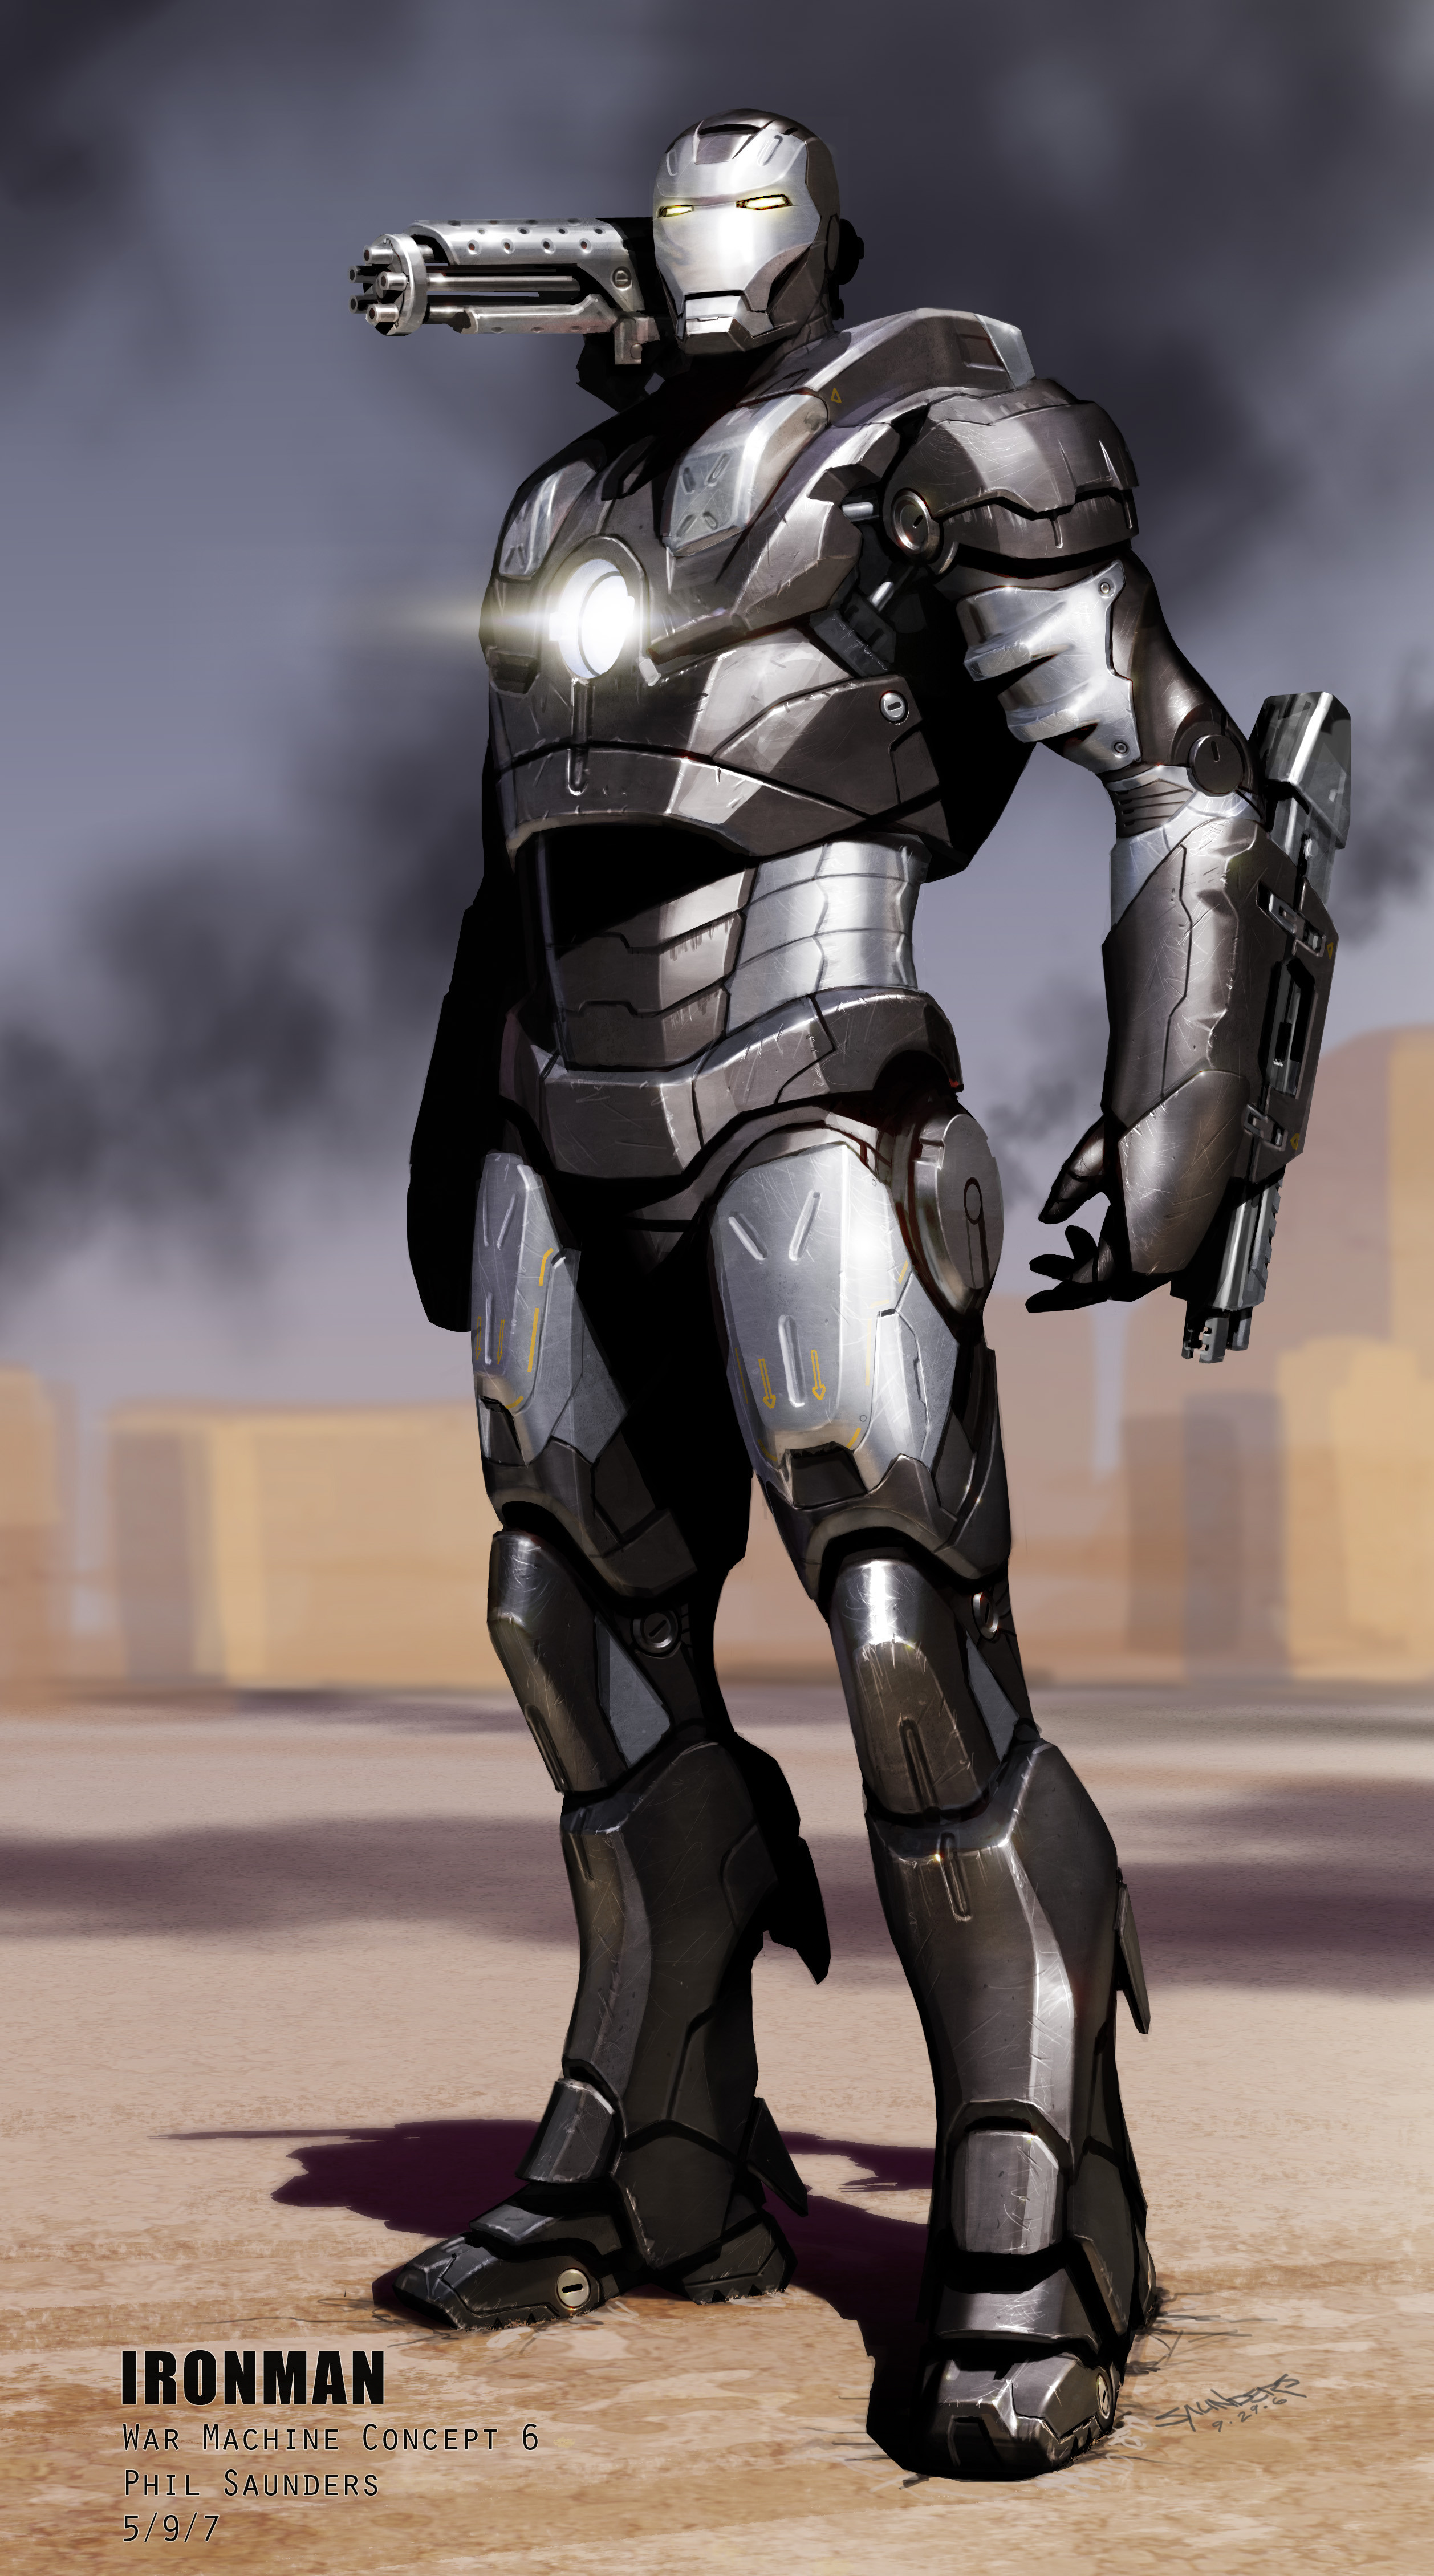 Final pass at War Machine in his traditional colors. Near the end of the project they wanted to see what the design would look like as an actual War Machine design, anticipating Iron Man 2.